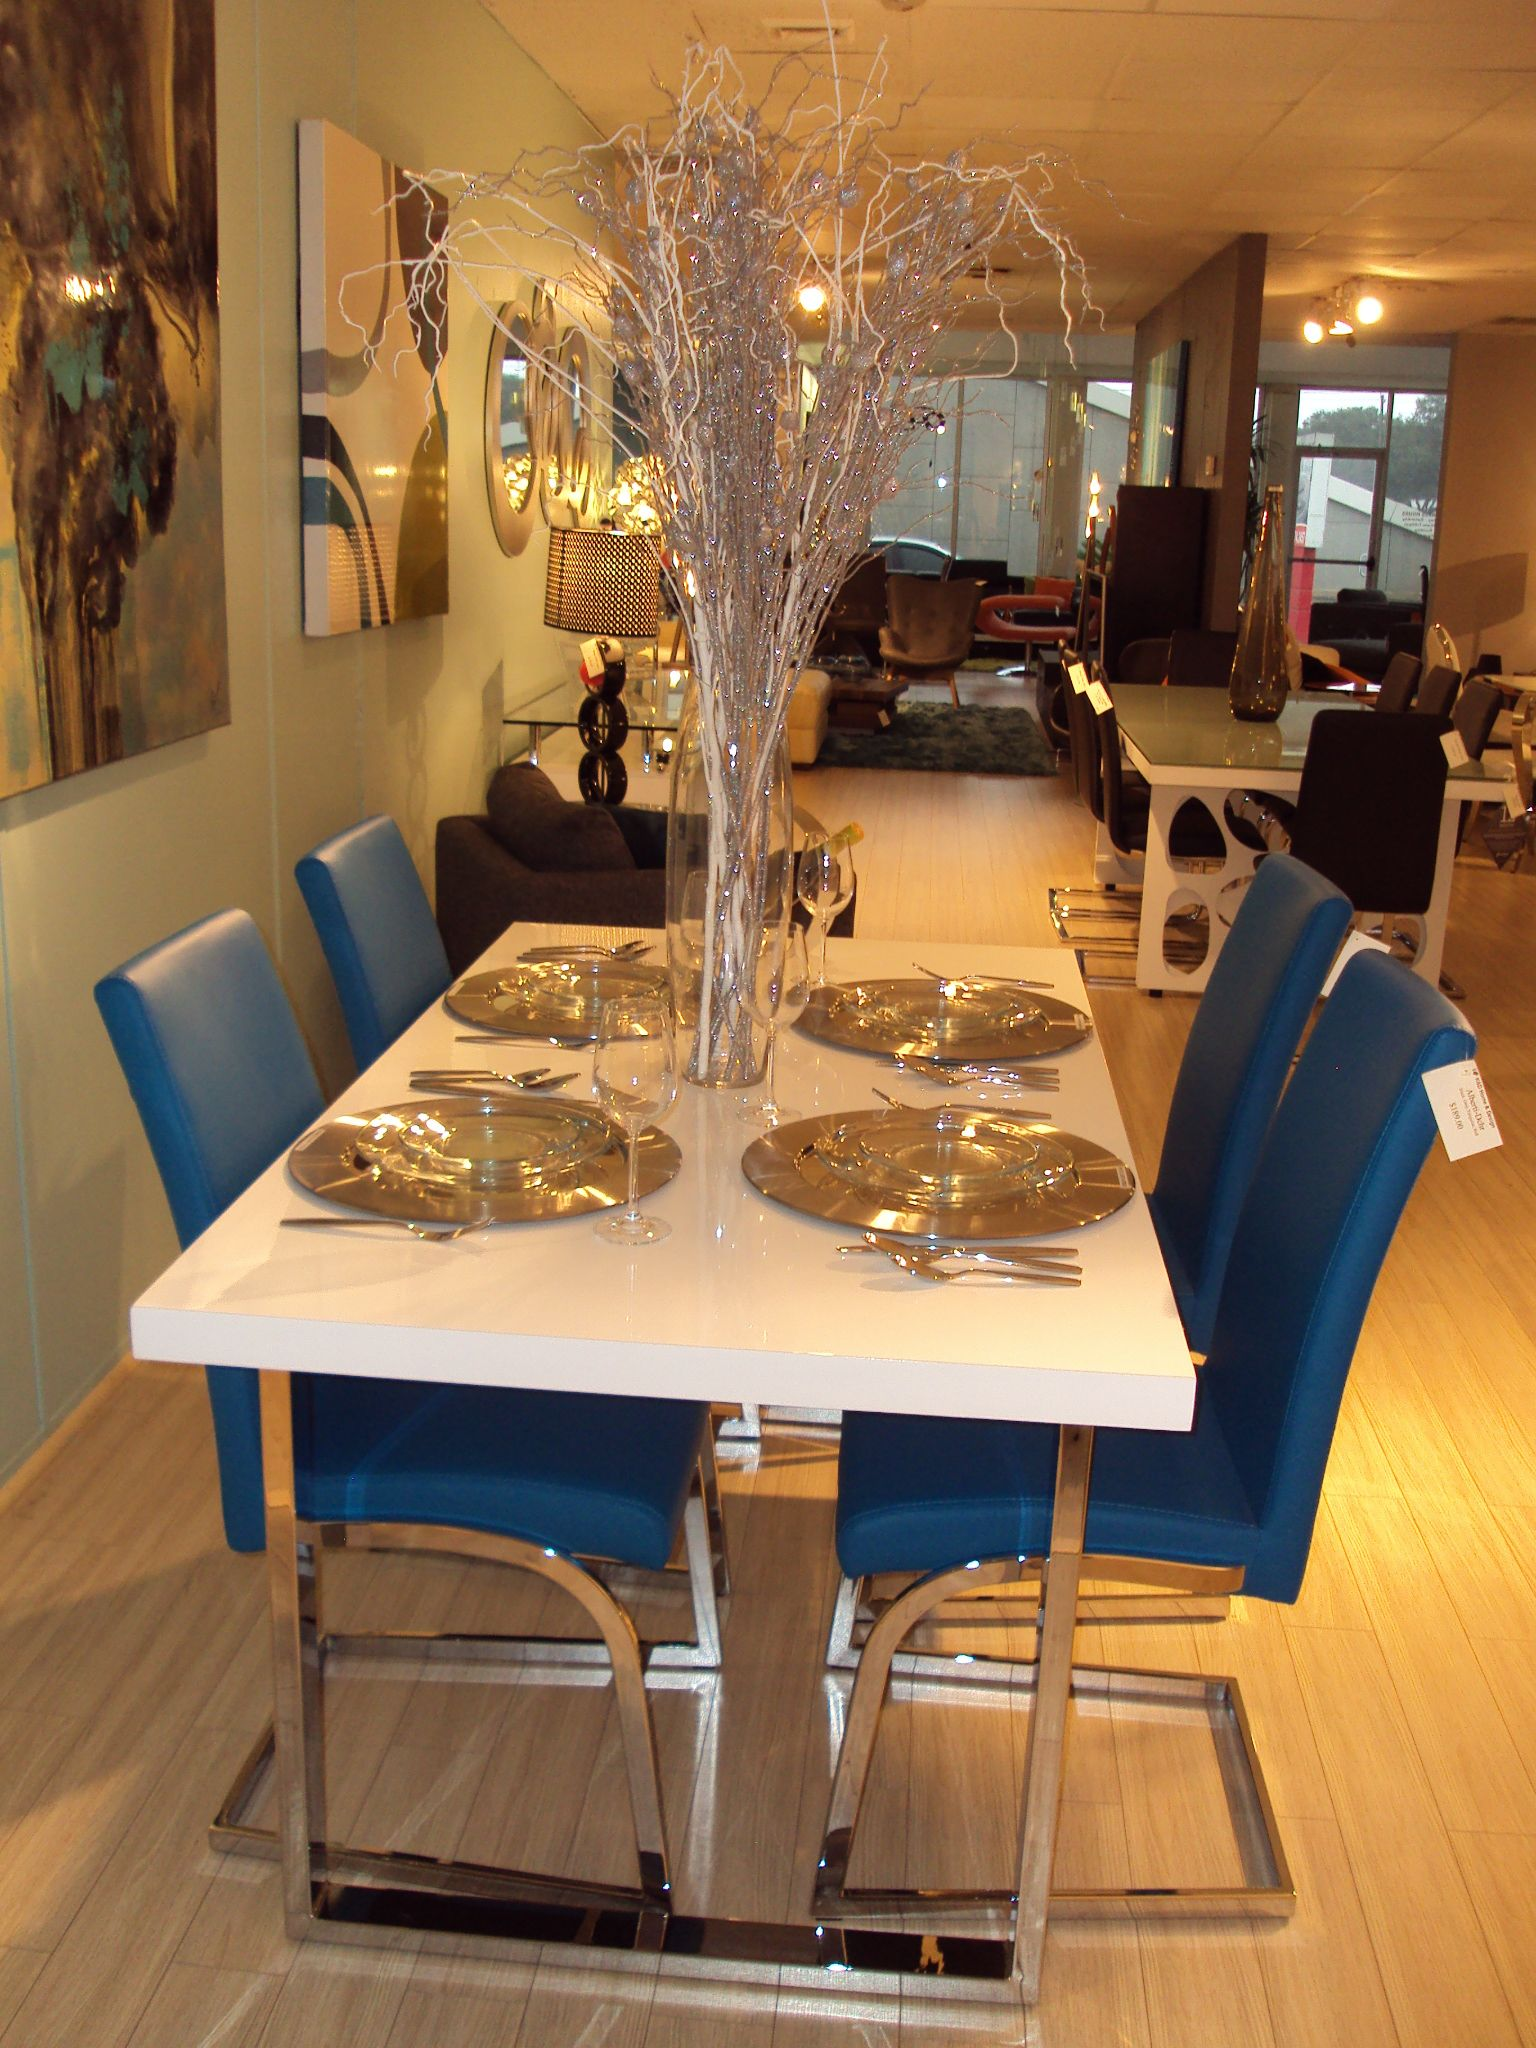 Contemporary Holiday Decorating At Kd Home And Design Studio Www